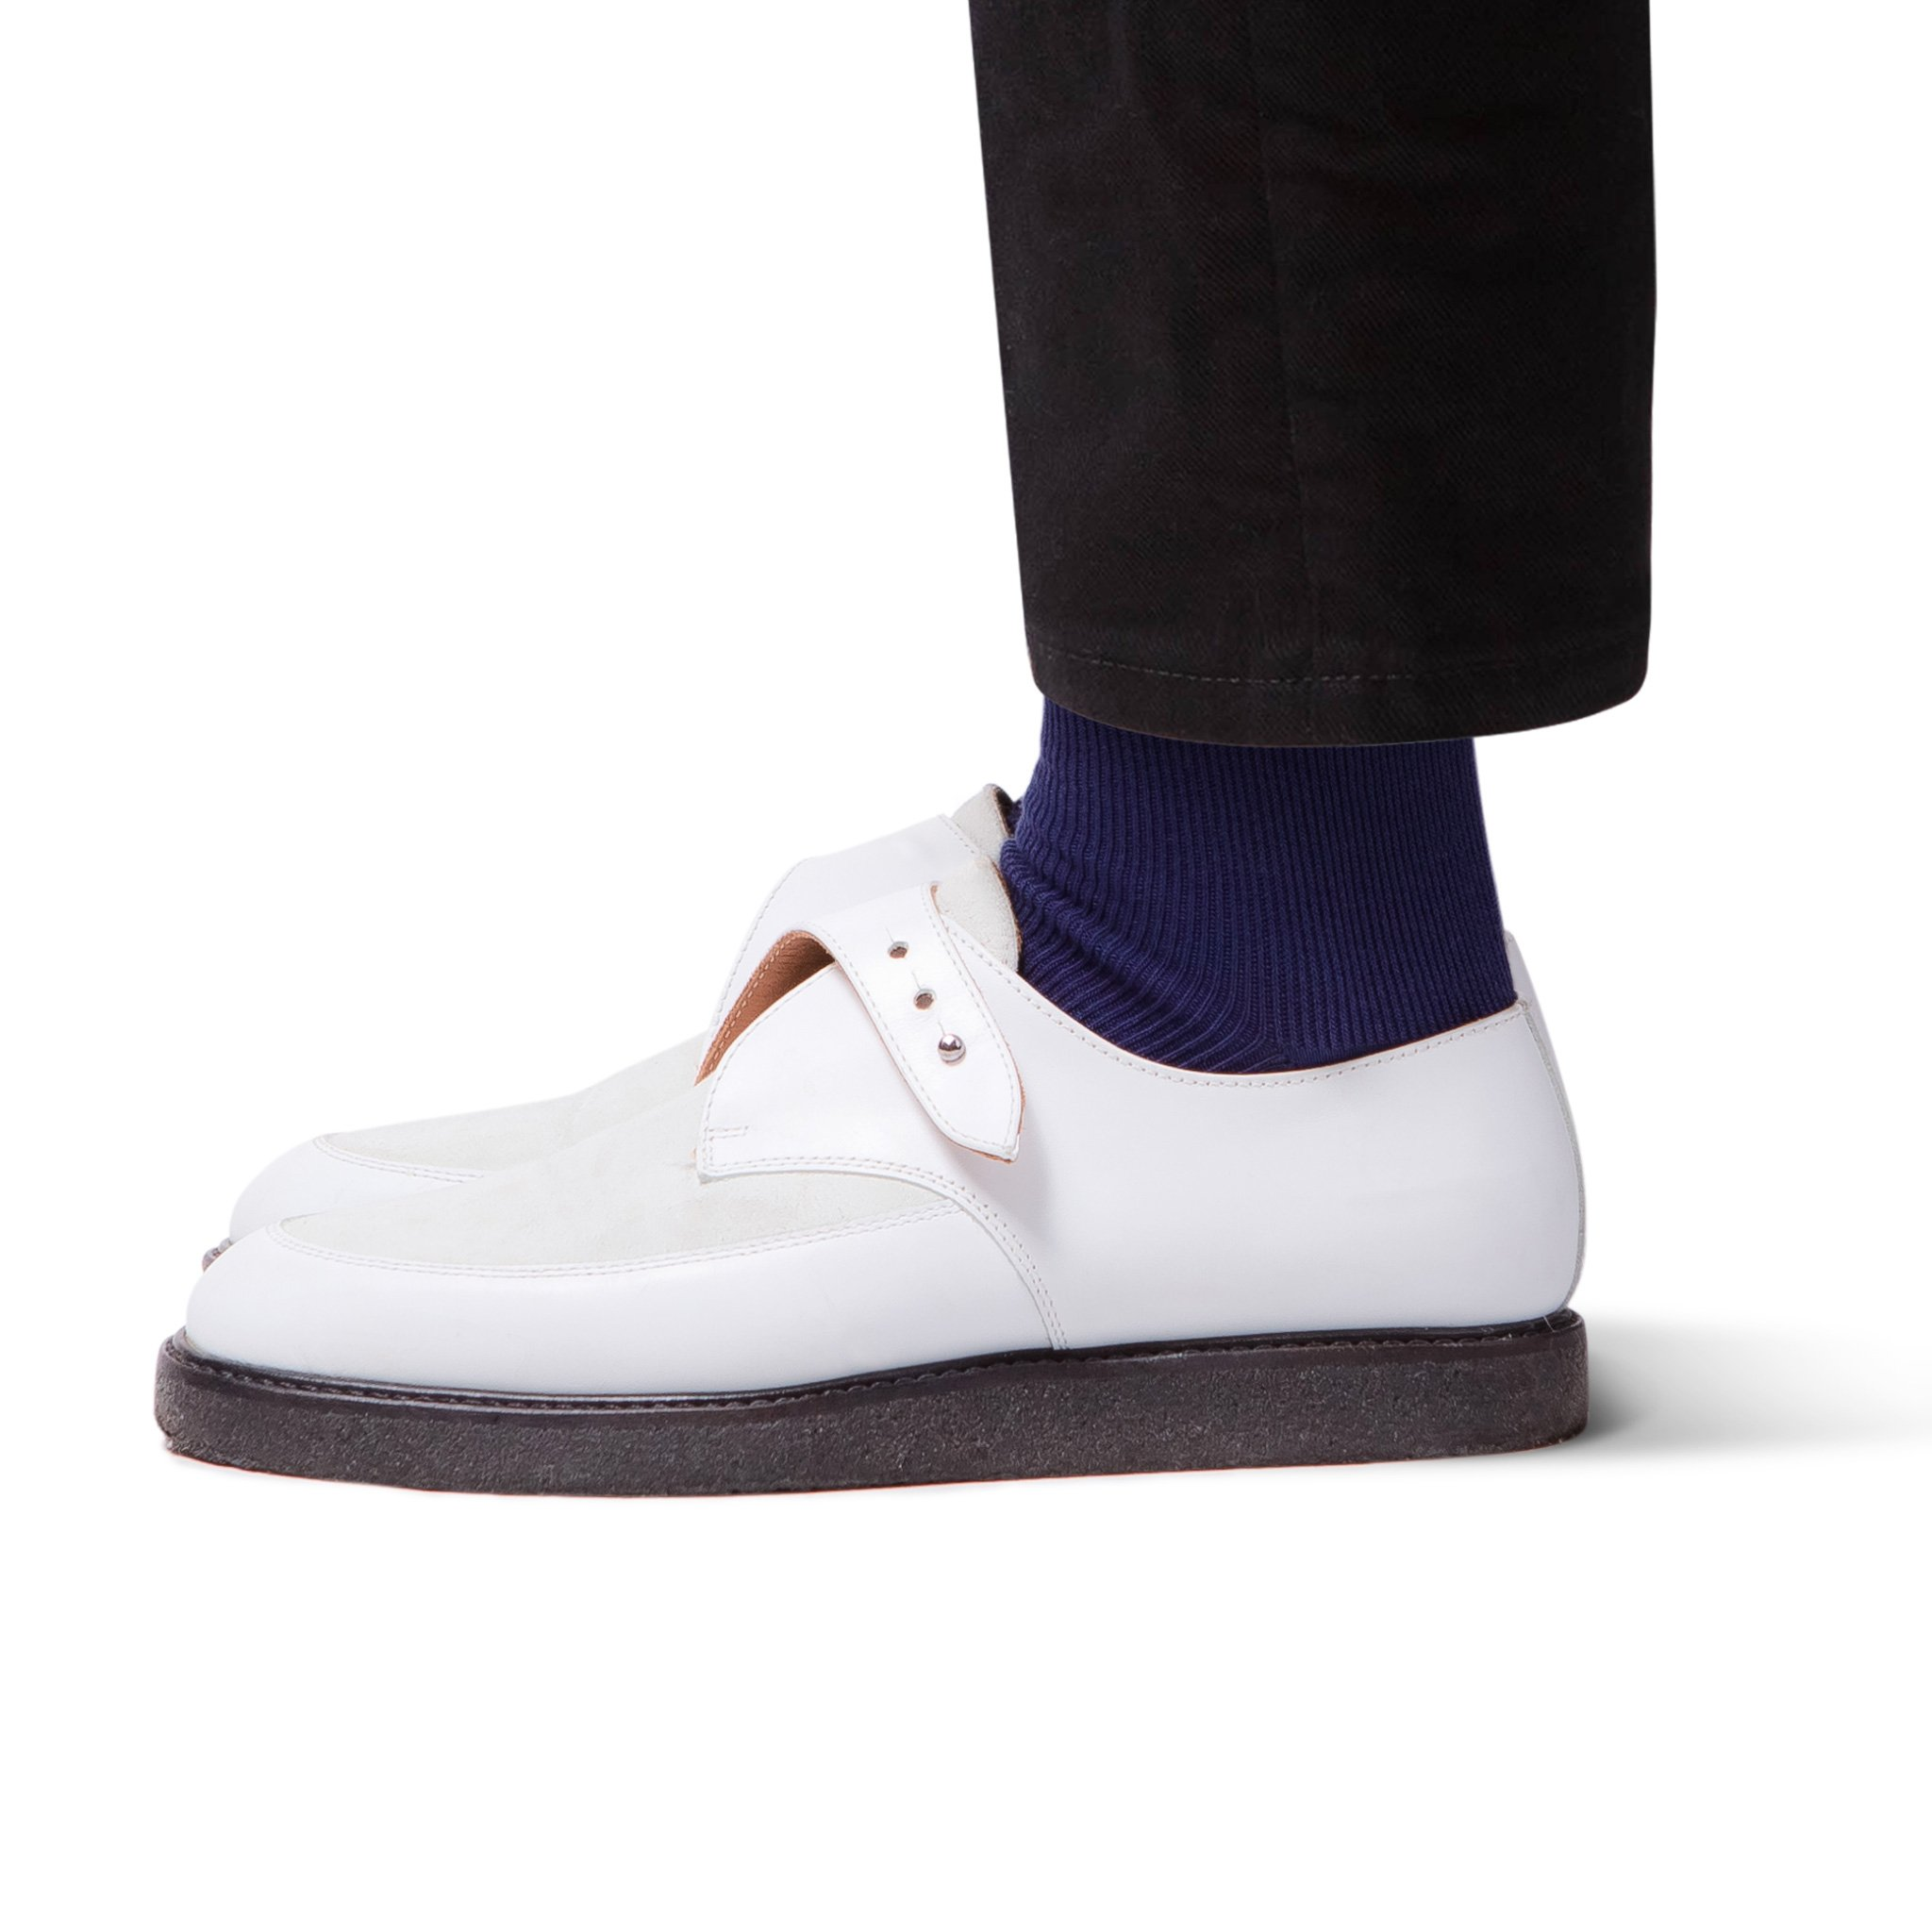 Sheec Basics - Fine Ribbed Cotton Socks (8 Pairs) SetB by Sheec (Image #4)